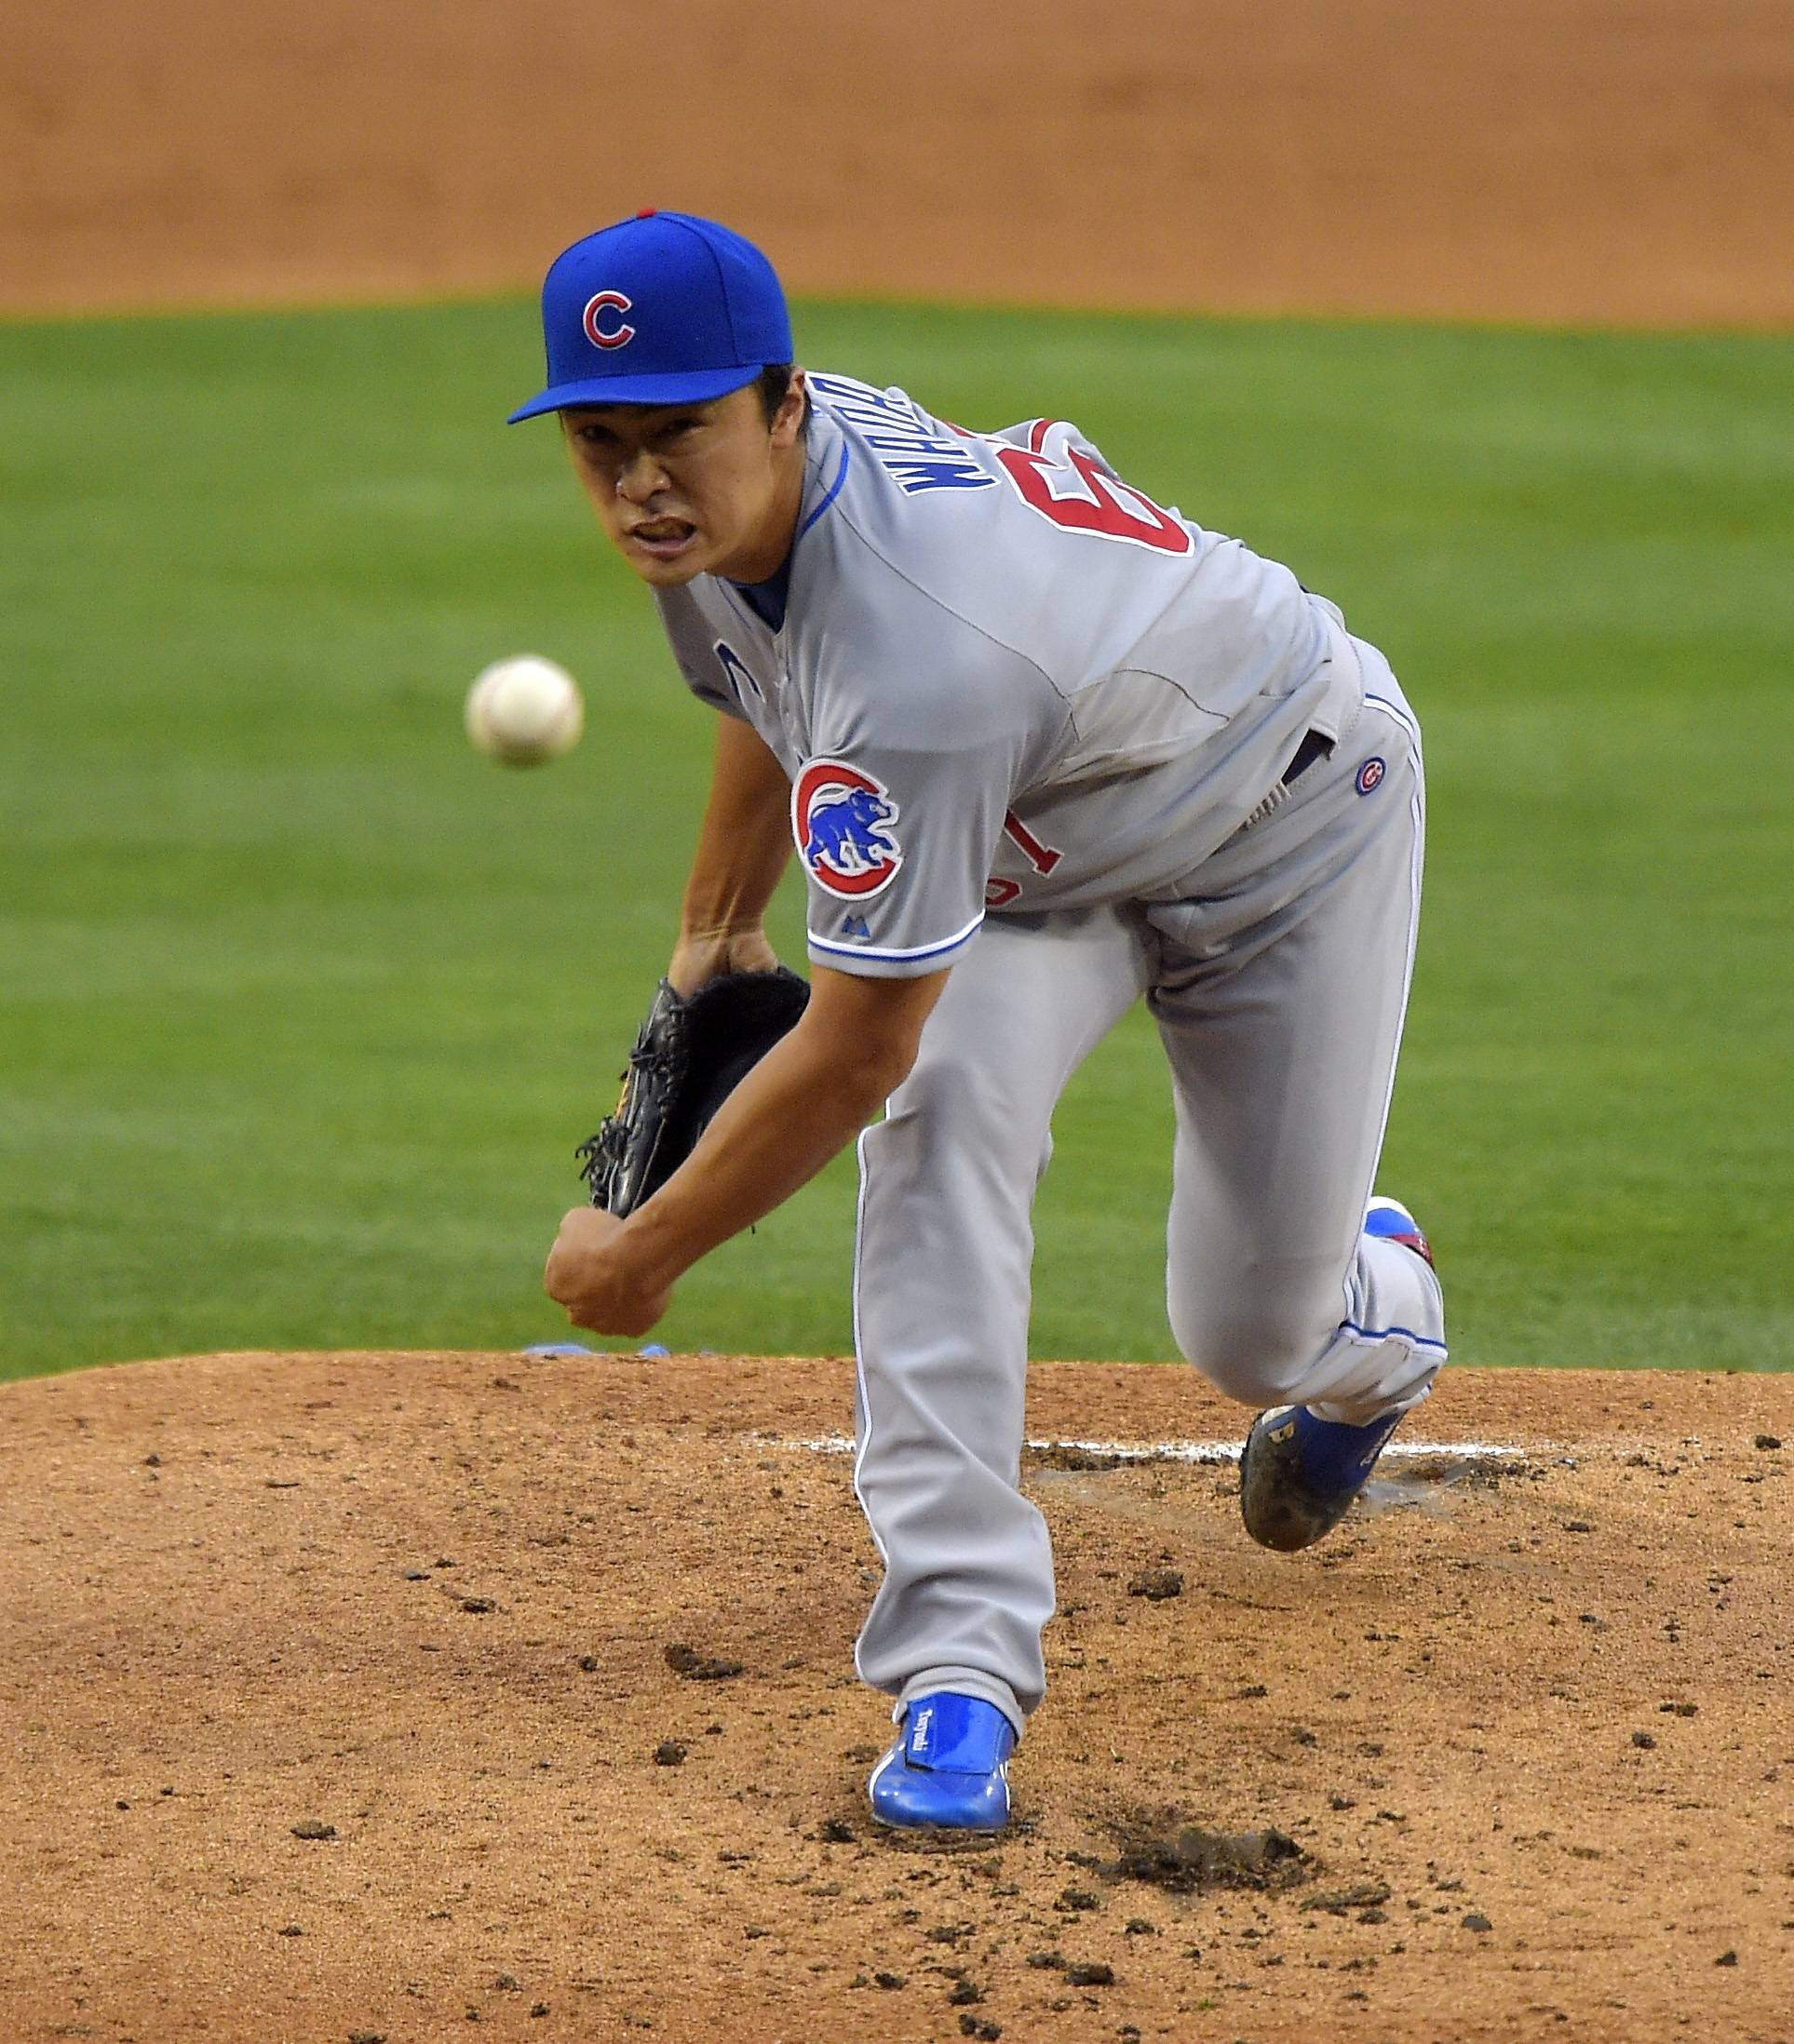 Cubs pitcher Tsuyoshi Wada started Saturday's game against the Dodgers in Los Angeles. The Cubs lost after a three-run homer in the 12th inning, 5-2.